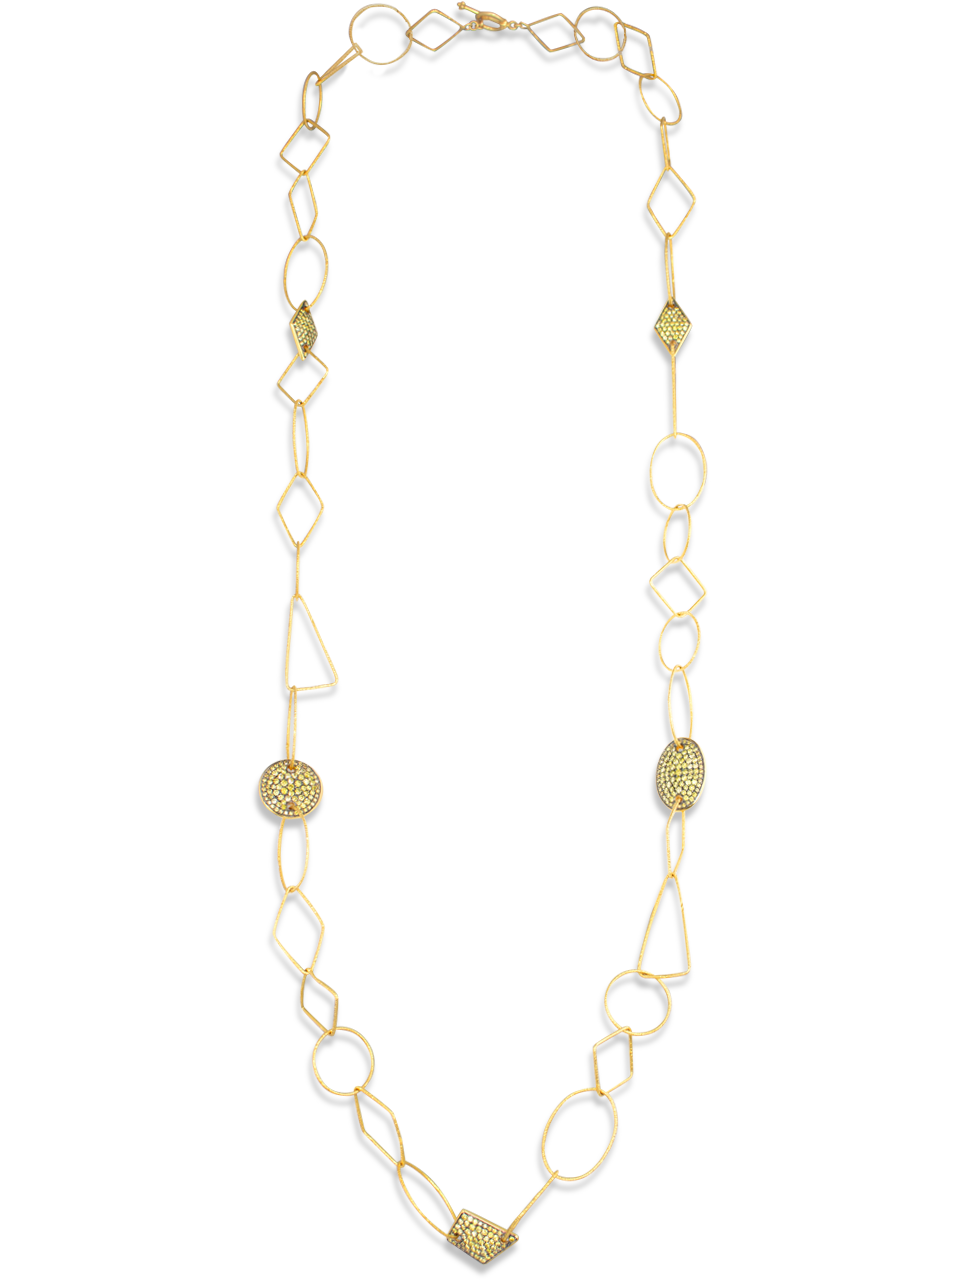 18k Gold Link Necklace with Yellow Diamonds-1